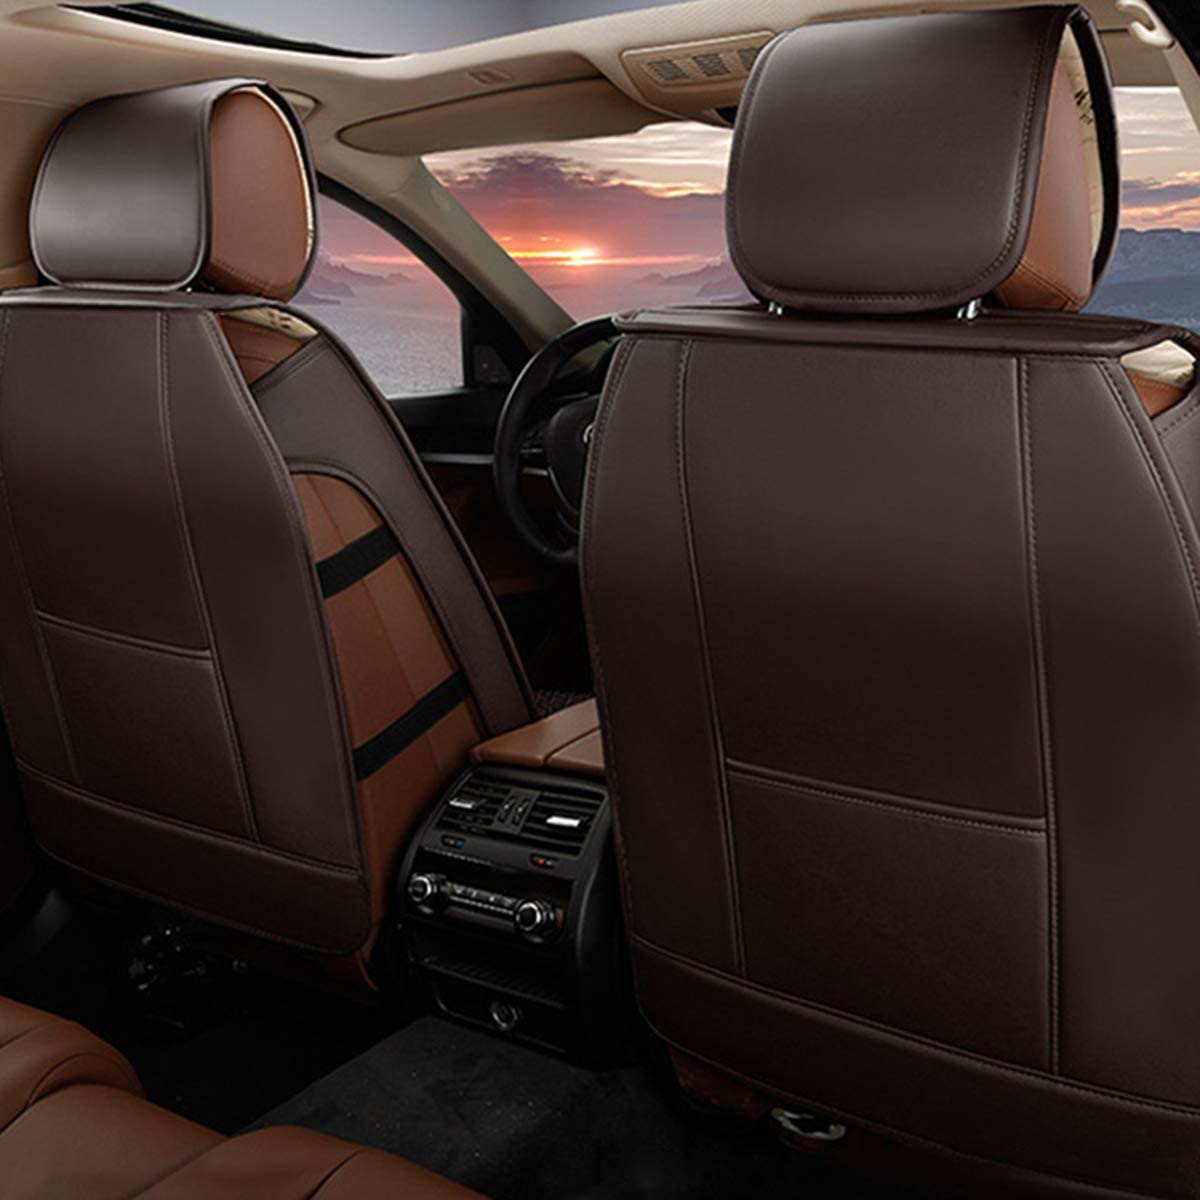 Truck for Mercedes-Benz Universal 5-Seats Car Seat Covers PU Leather Waterproof Seats Cushion All Season Fit Most Car or Van Front Seat+Rear Seat 5Pcs Standard Edition Brown SUV